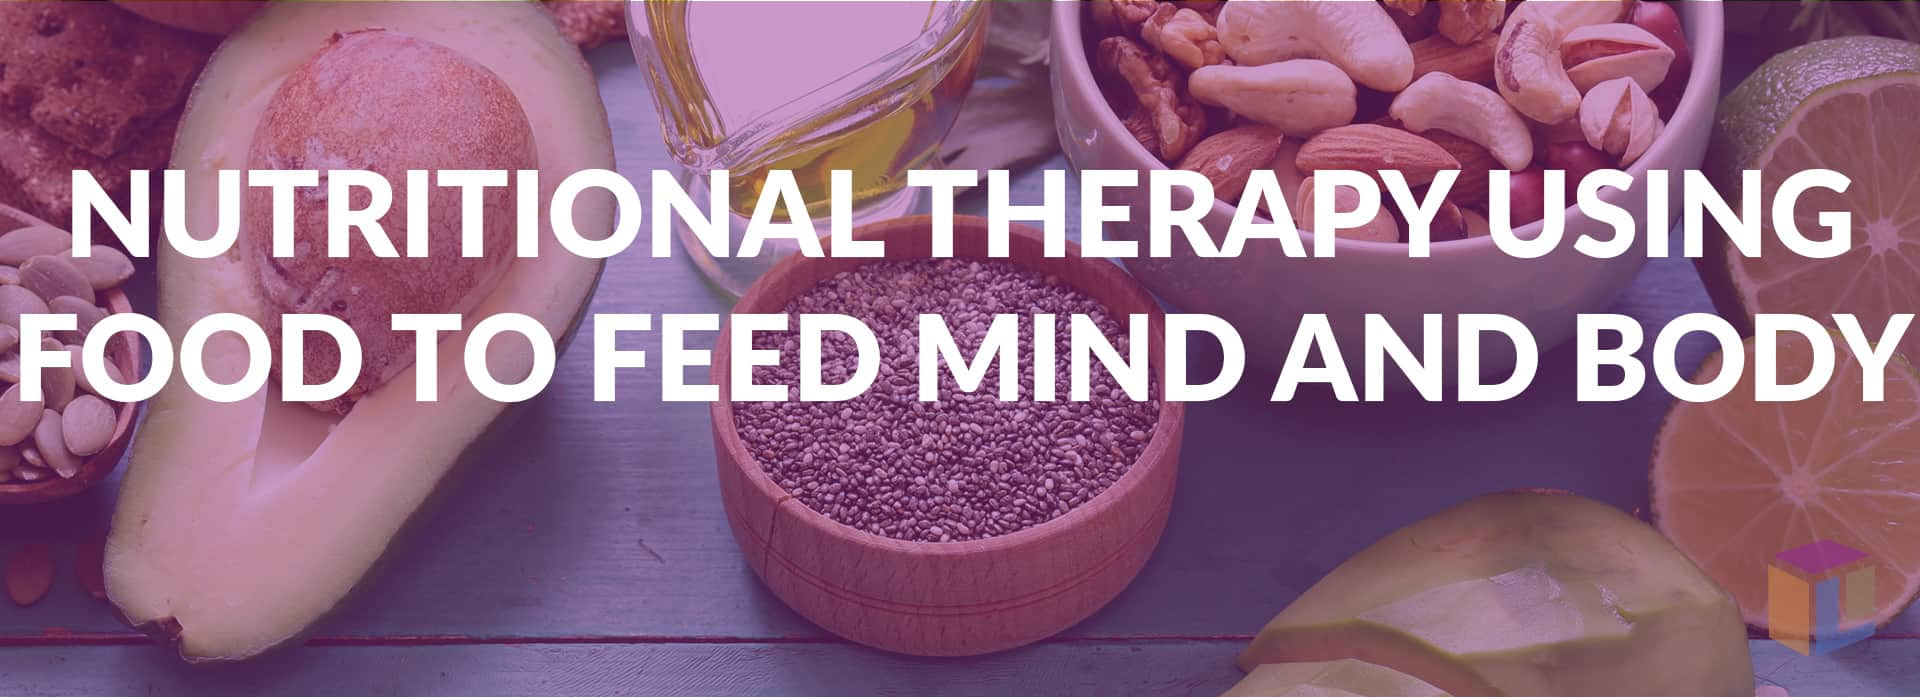 Nutritional Therapy Using Food To Feed Mind And Body